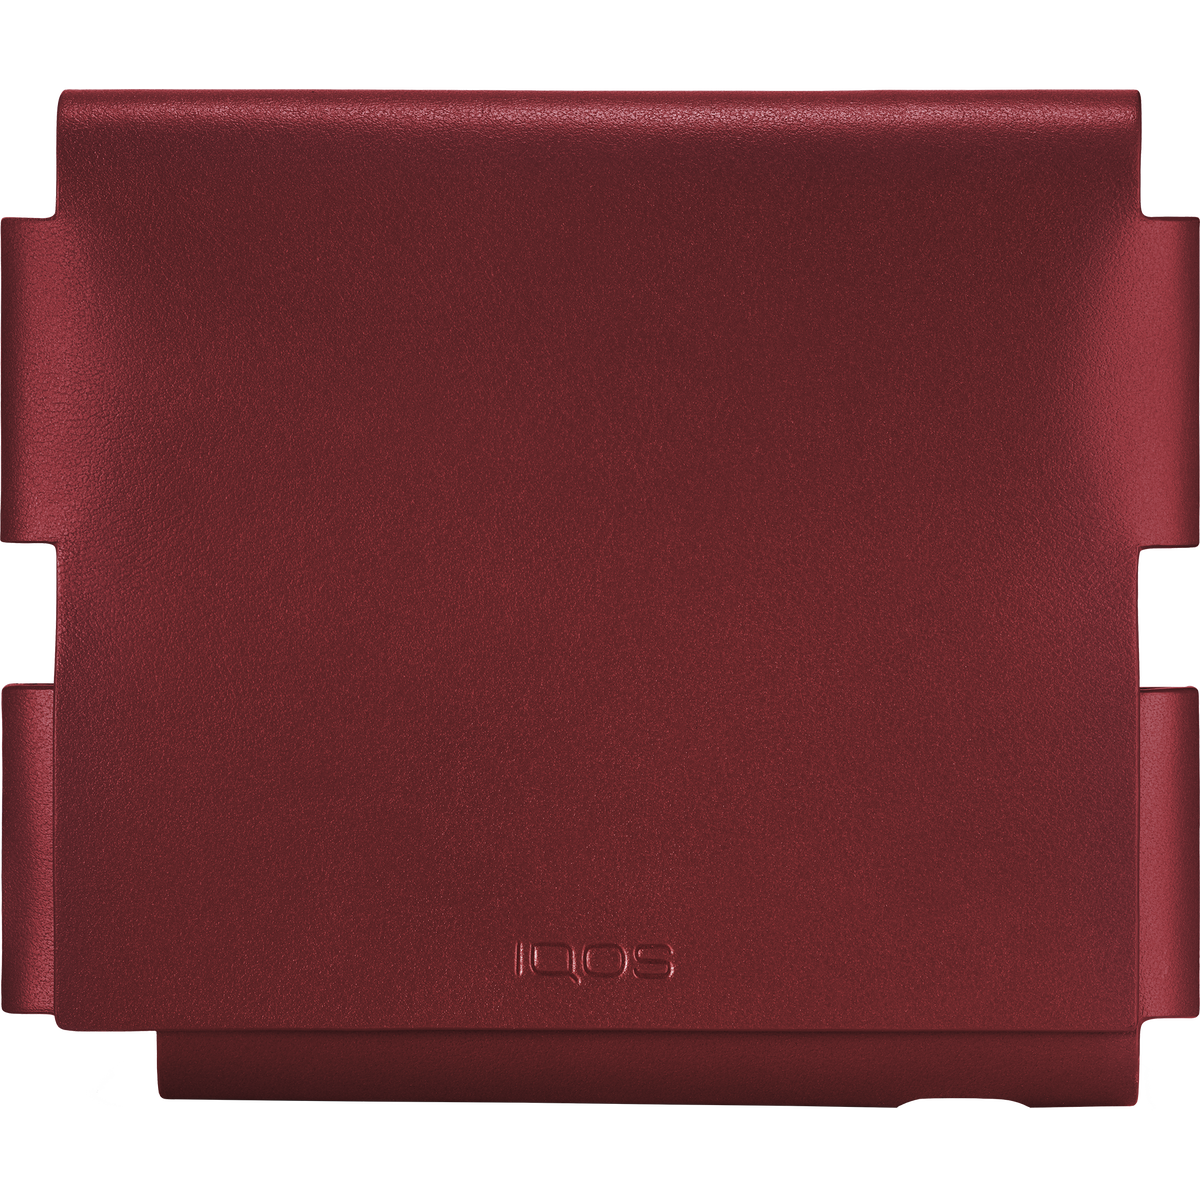 SHOP_leatherfolio_P1_Redpx_2048x2048.png